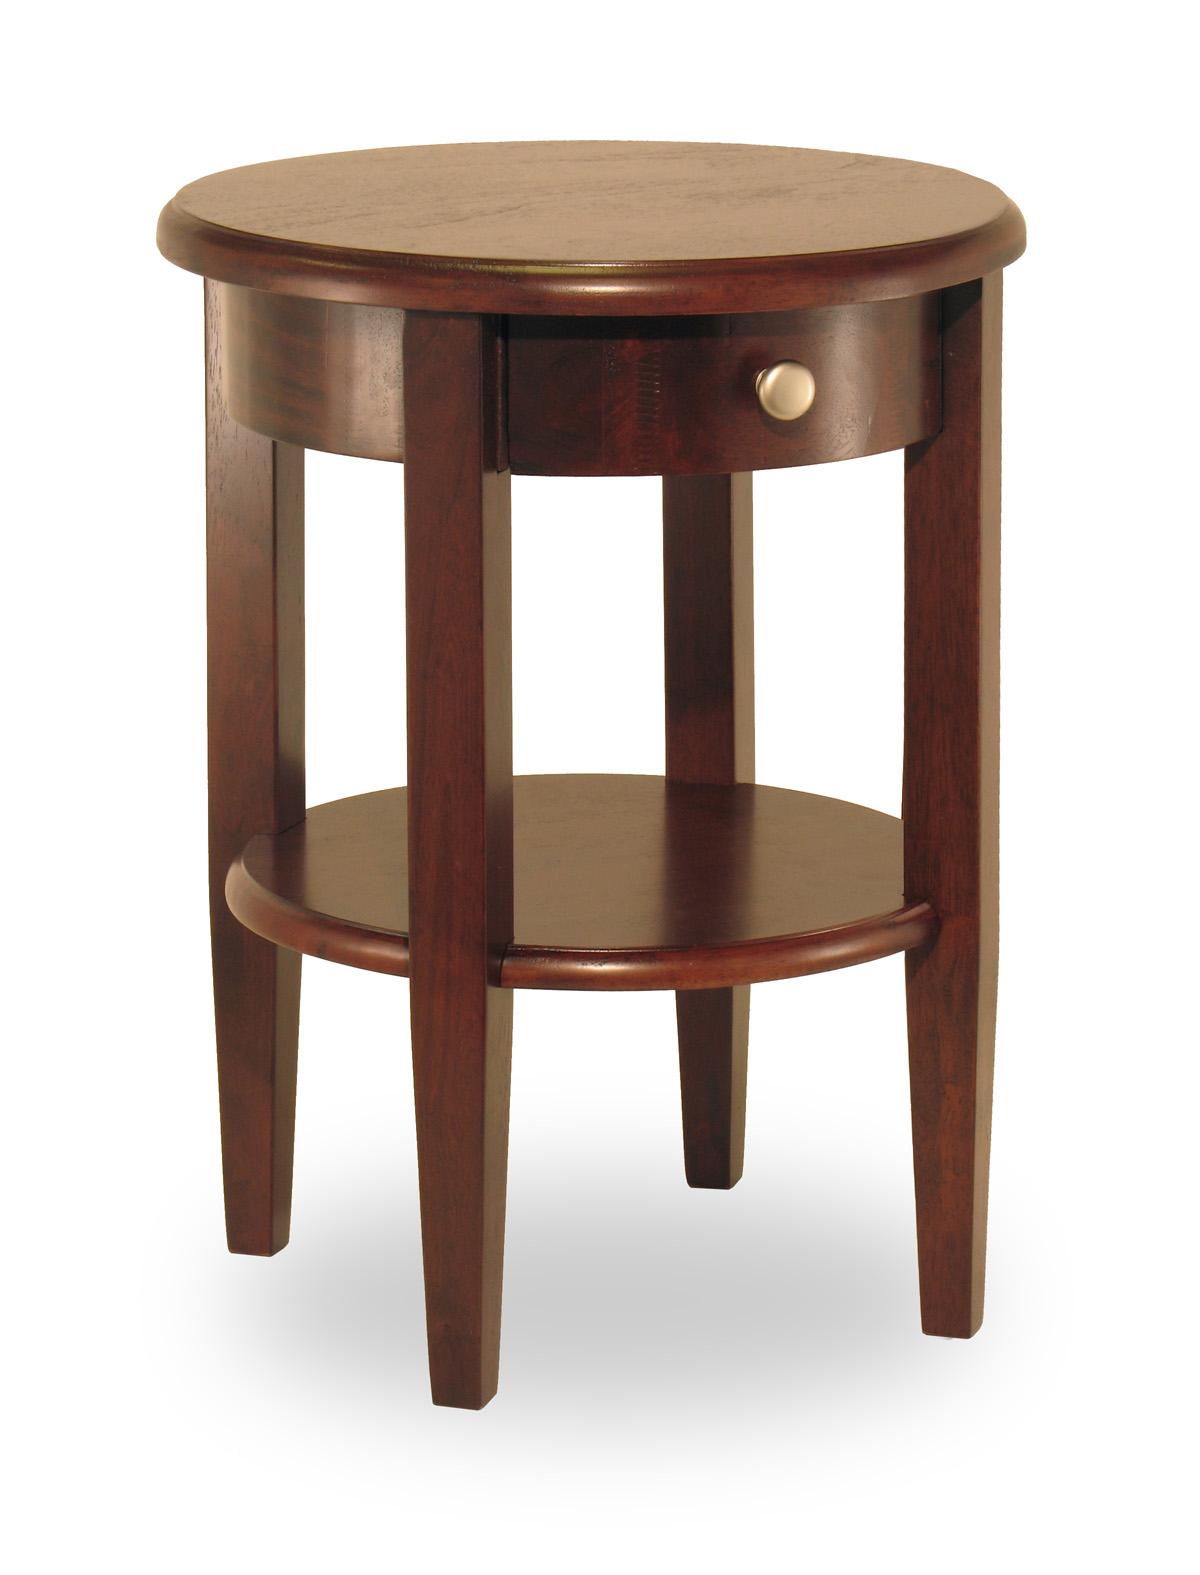 Winsome 94217 Antique Walnut Solid Wood TABLE END TABLE ROUND W/DRAWER SHELF